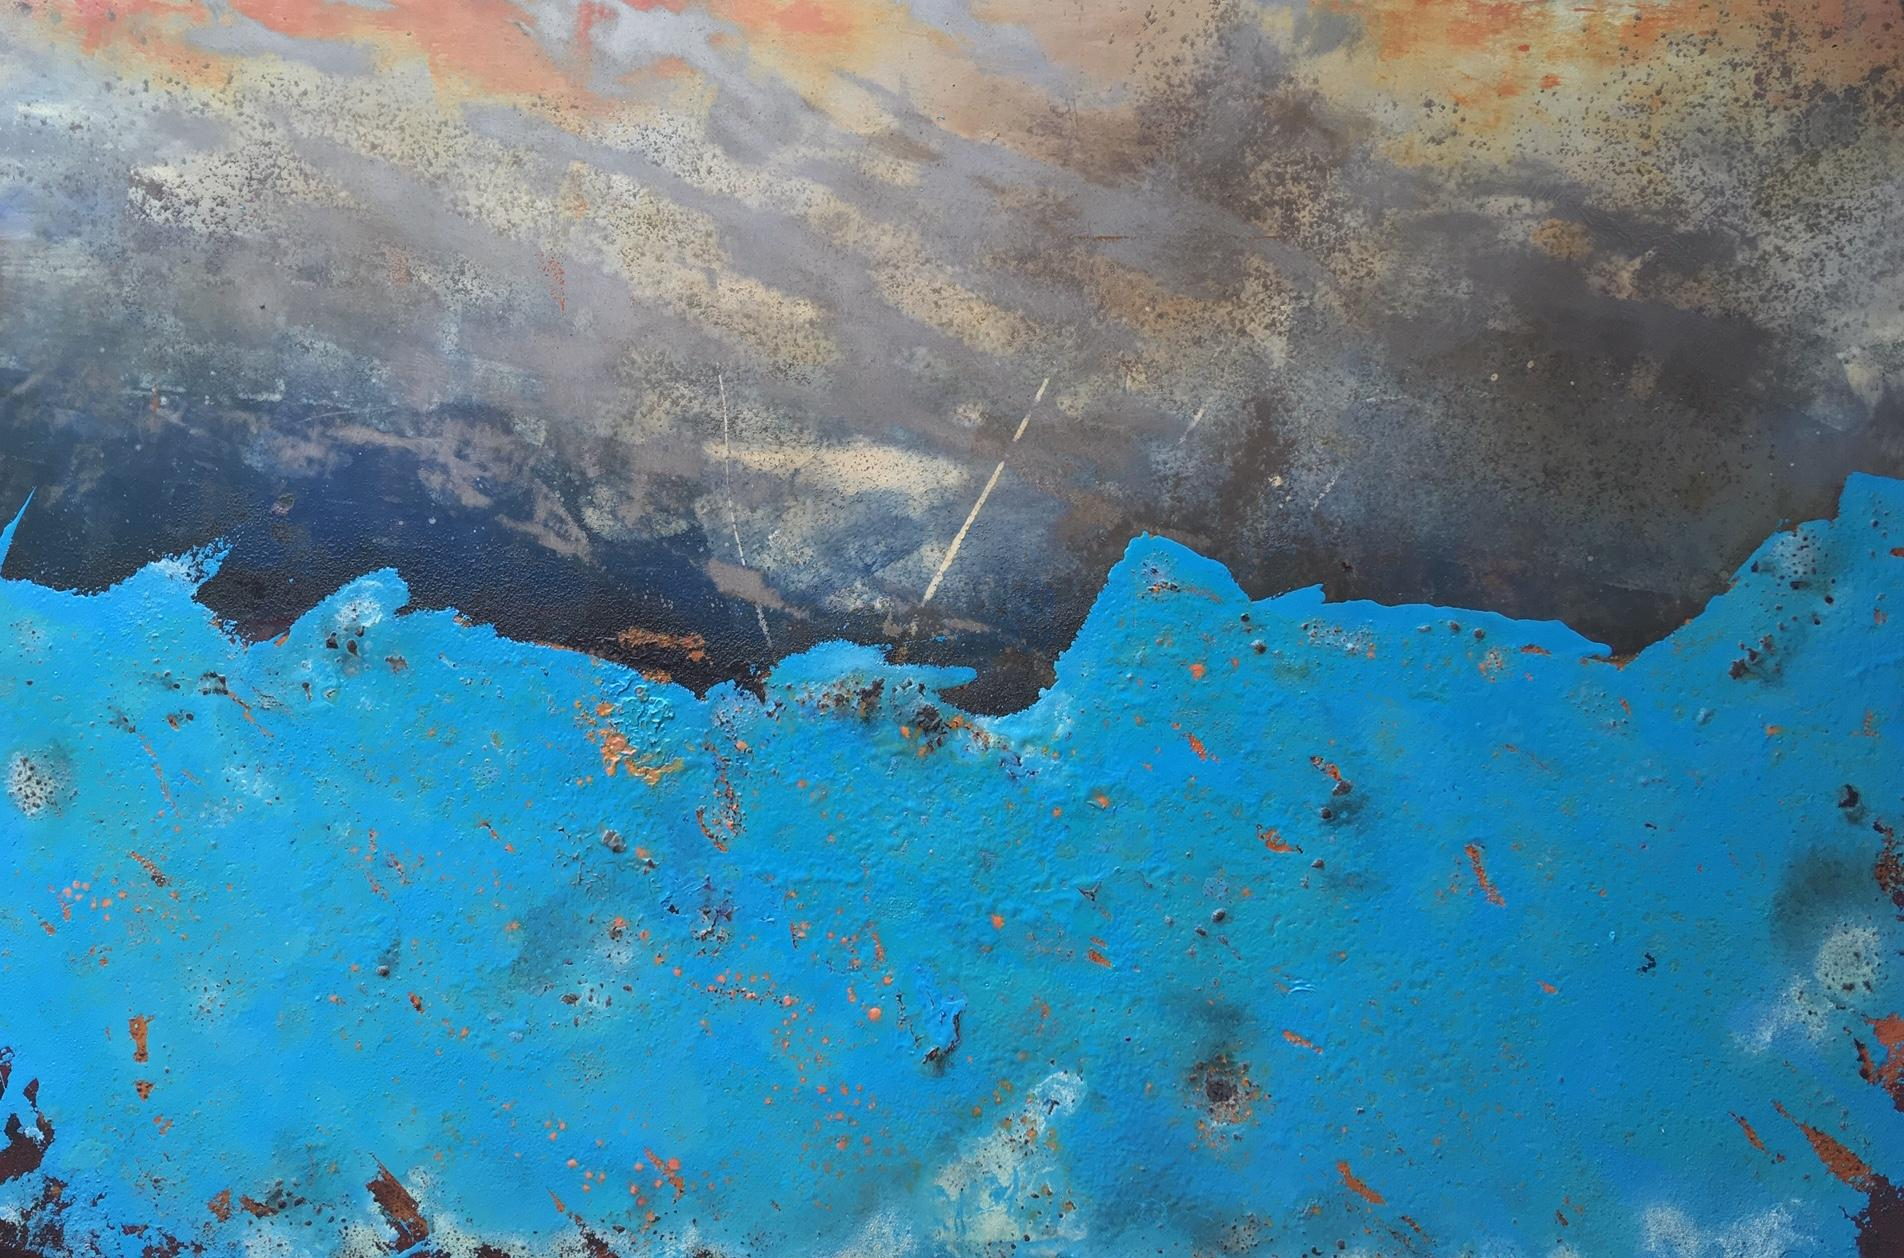 Morlais by Sam Peacock - Contemporary abstract, Blue Landscape on steel